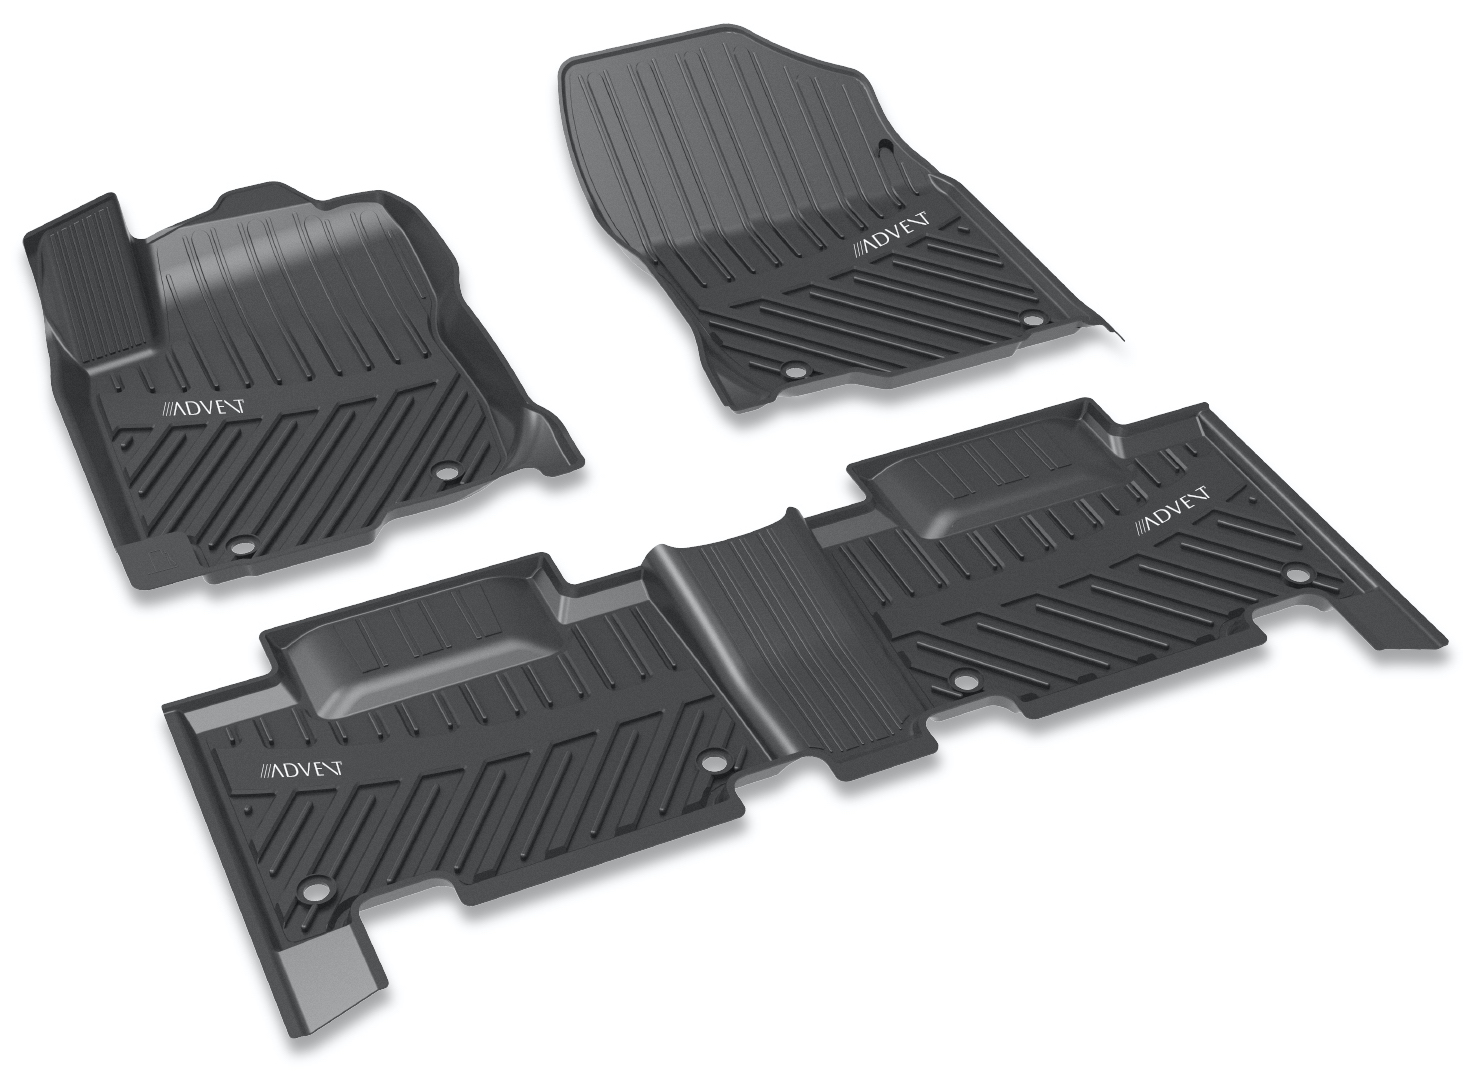 Image of Toyota Camry All-Weather Floor Mat Kit